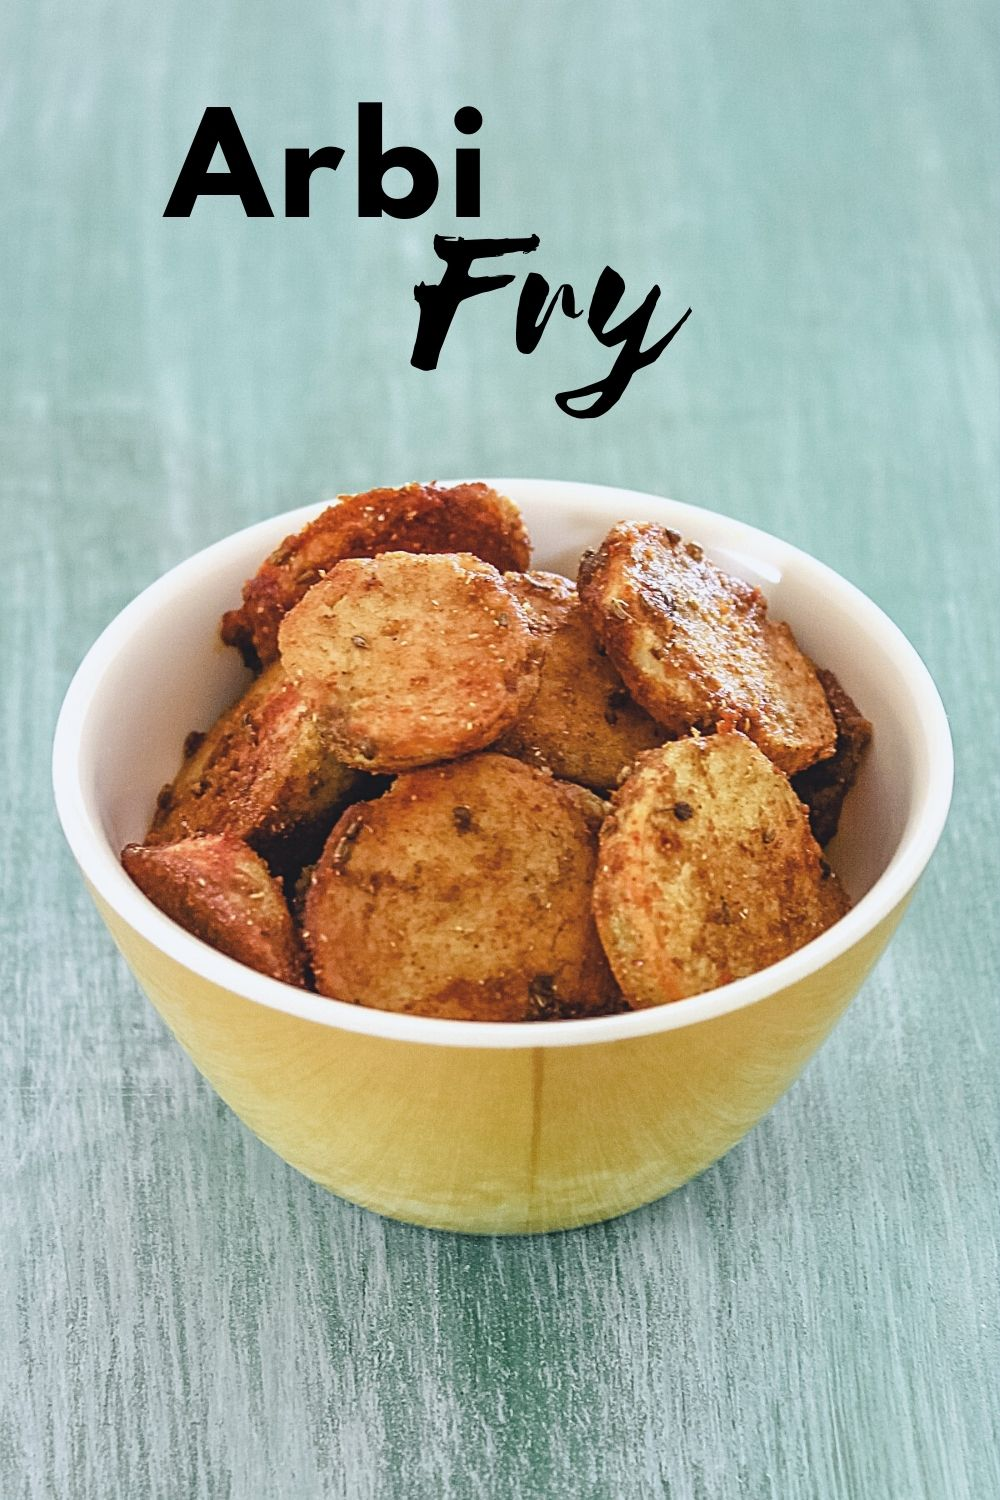 Arbi fry in a bowl with text on the image for pinterest